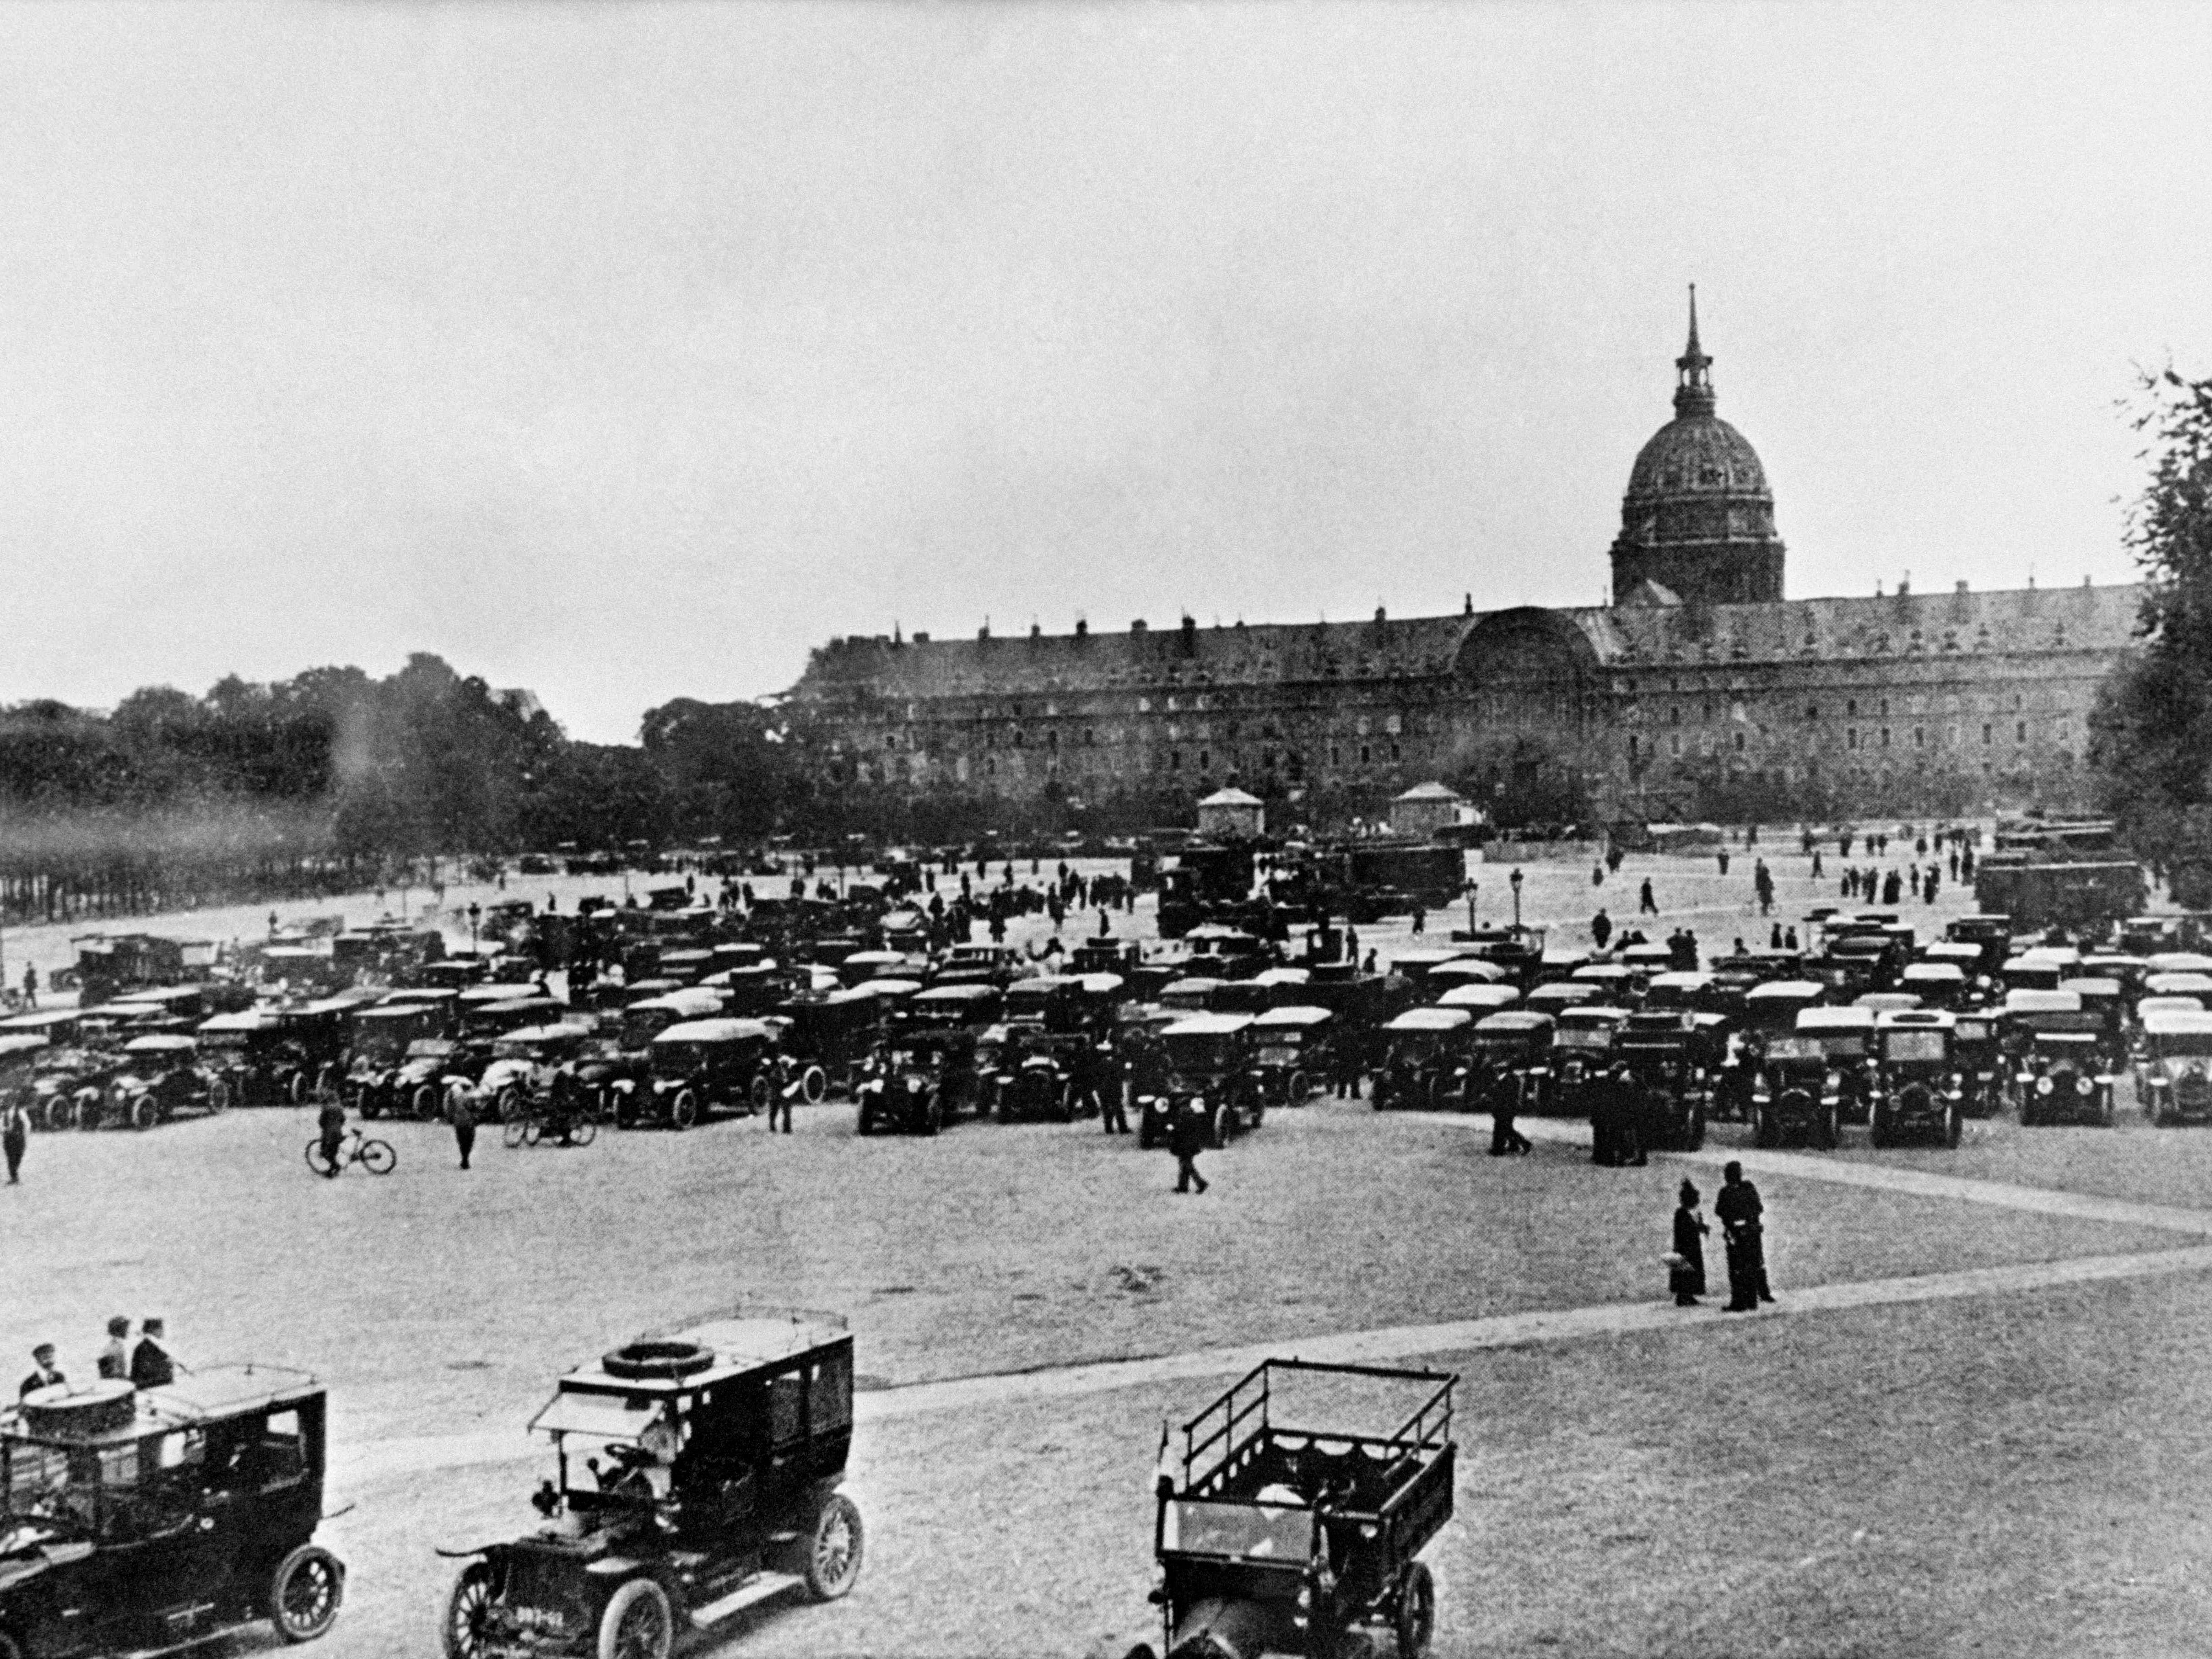 This photo taken Sept. 5, 1914, shows hundreds of Parisian taxis gathered in front of the Invalides in Paris. It is largely thanks to the Paris taxis, gathered on the orders of General Gallieni, governor of Paris, that the famous Battle of the Marne was won over the German armies.